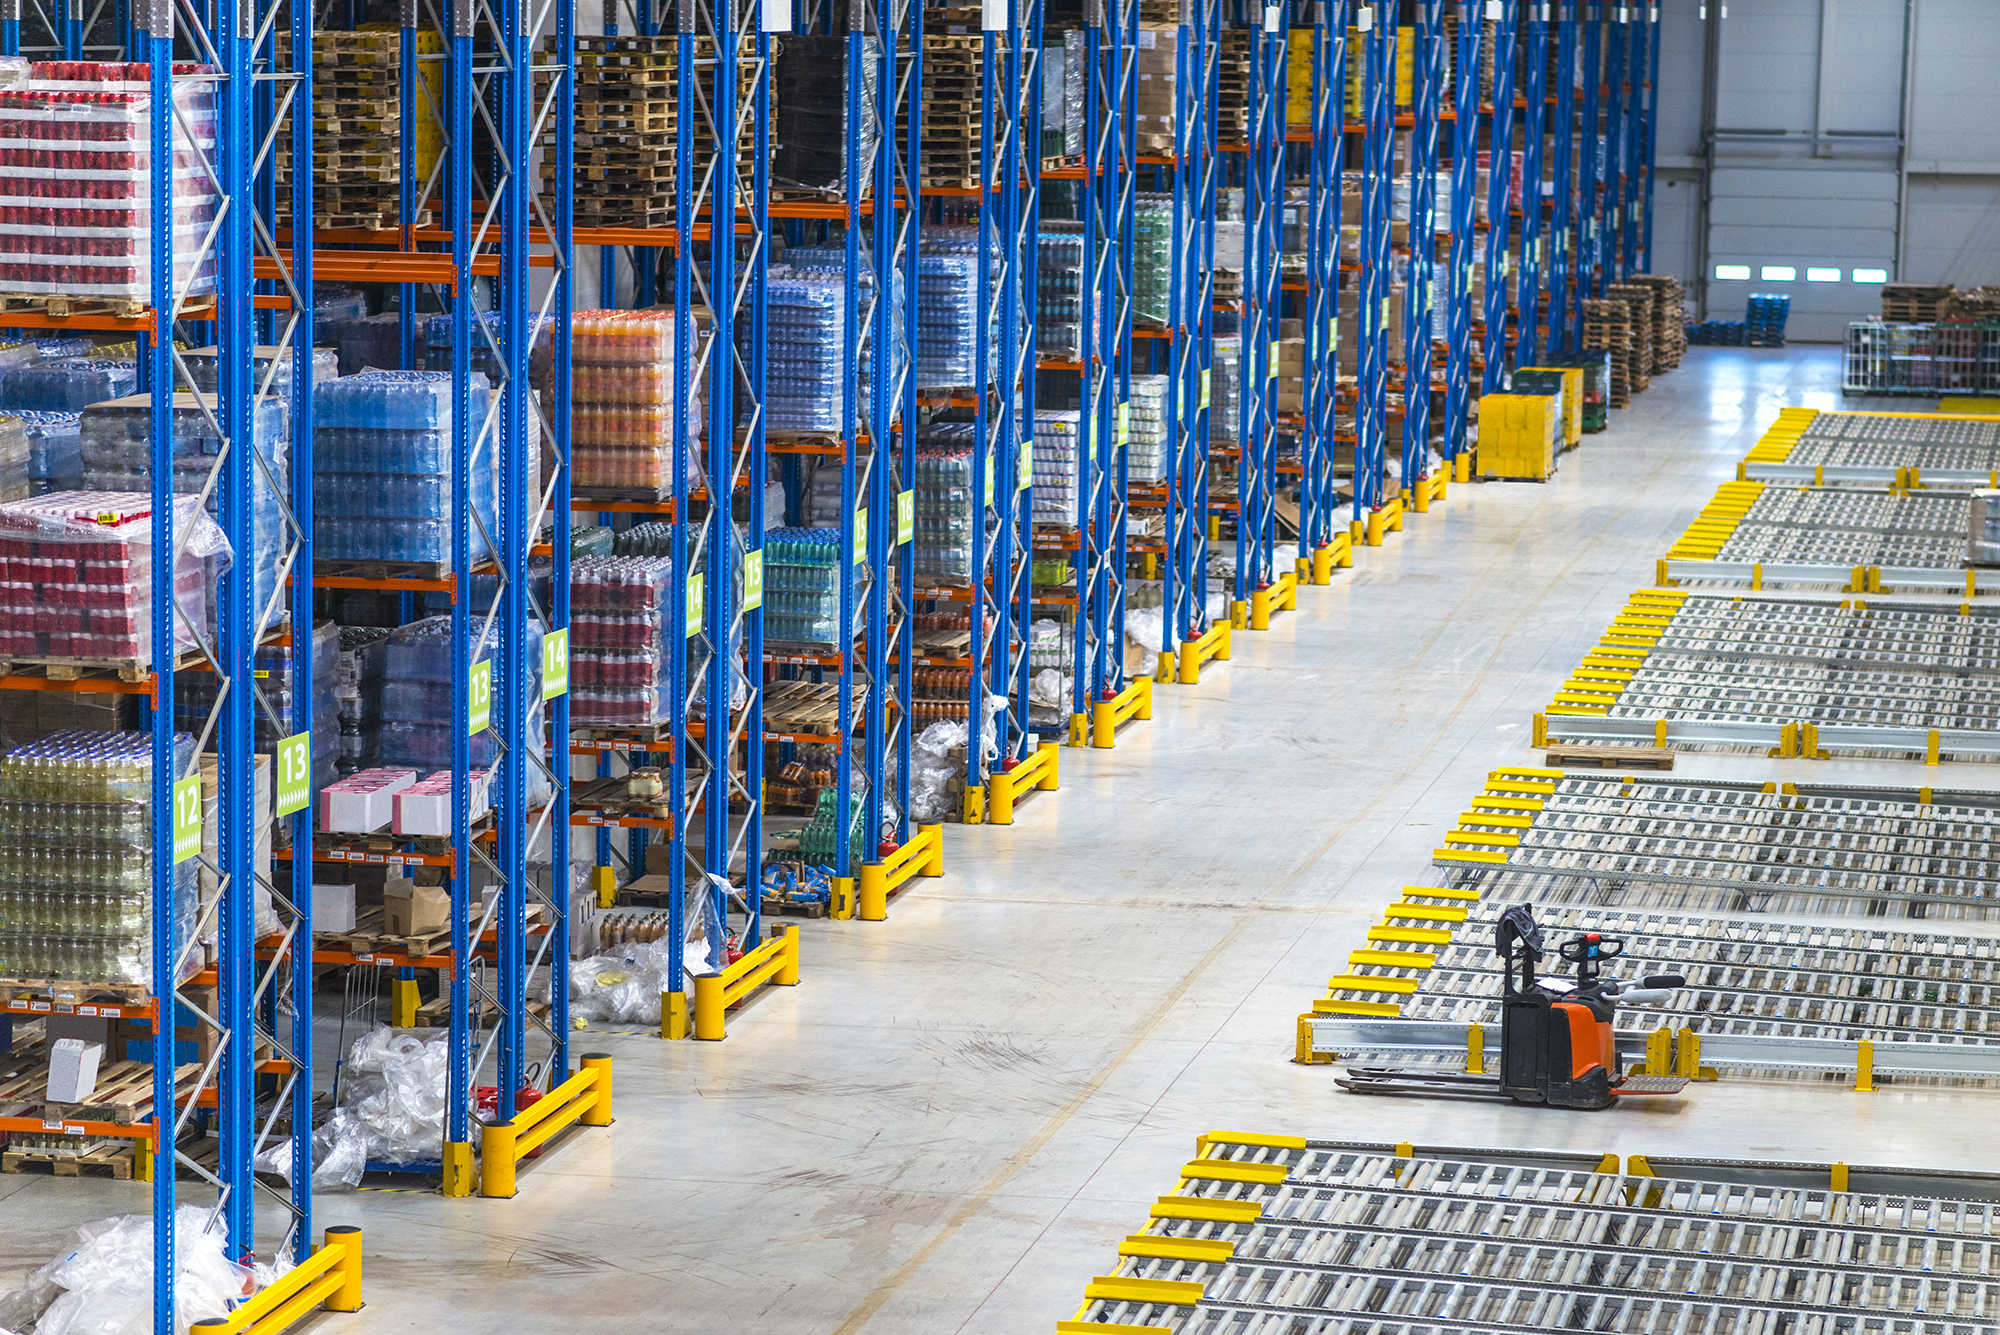 Interior of a large distribution warehouse.